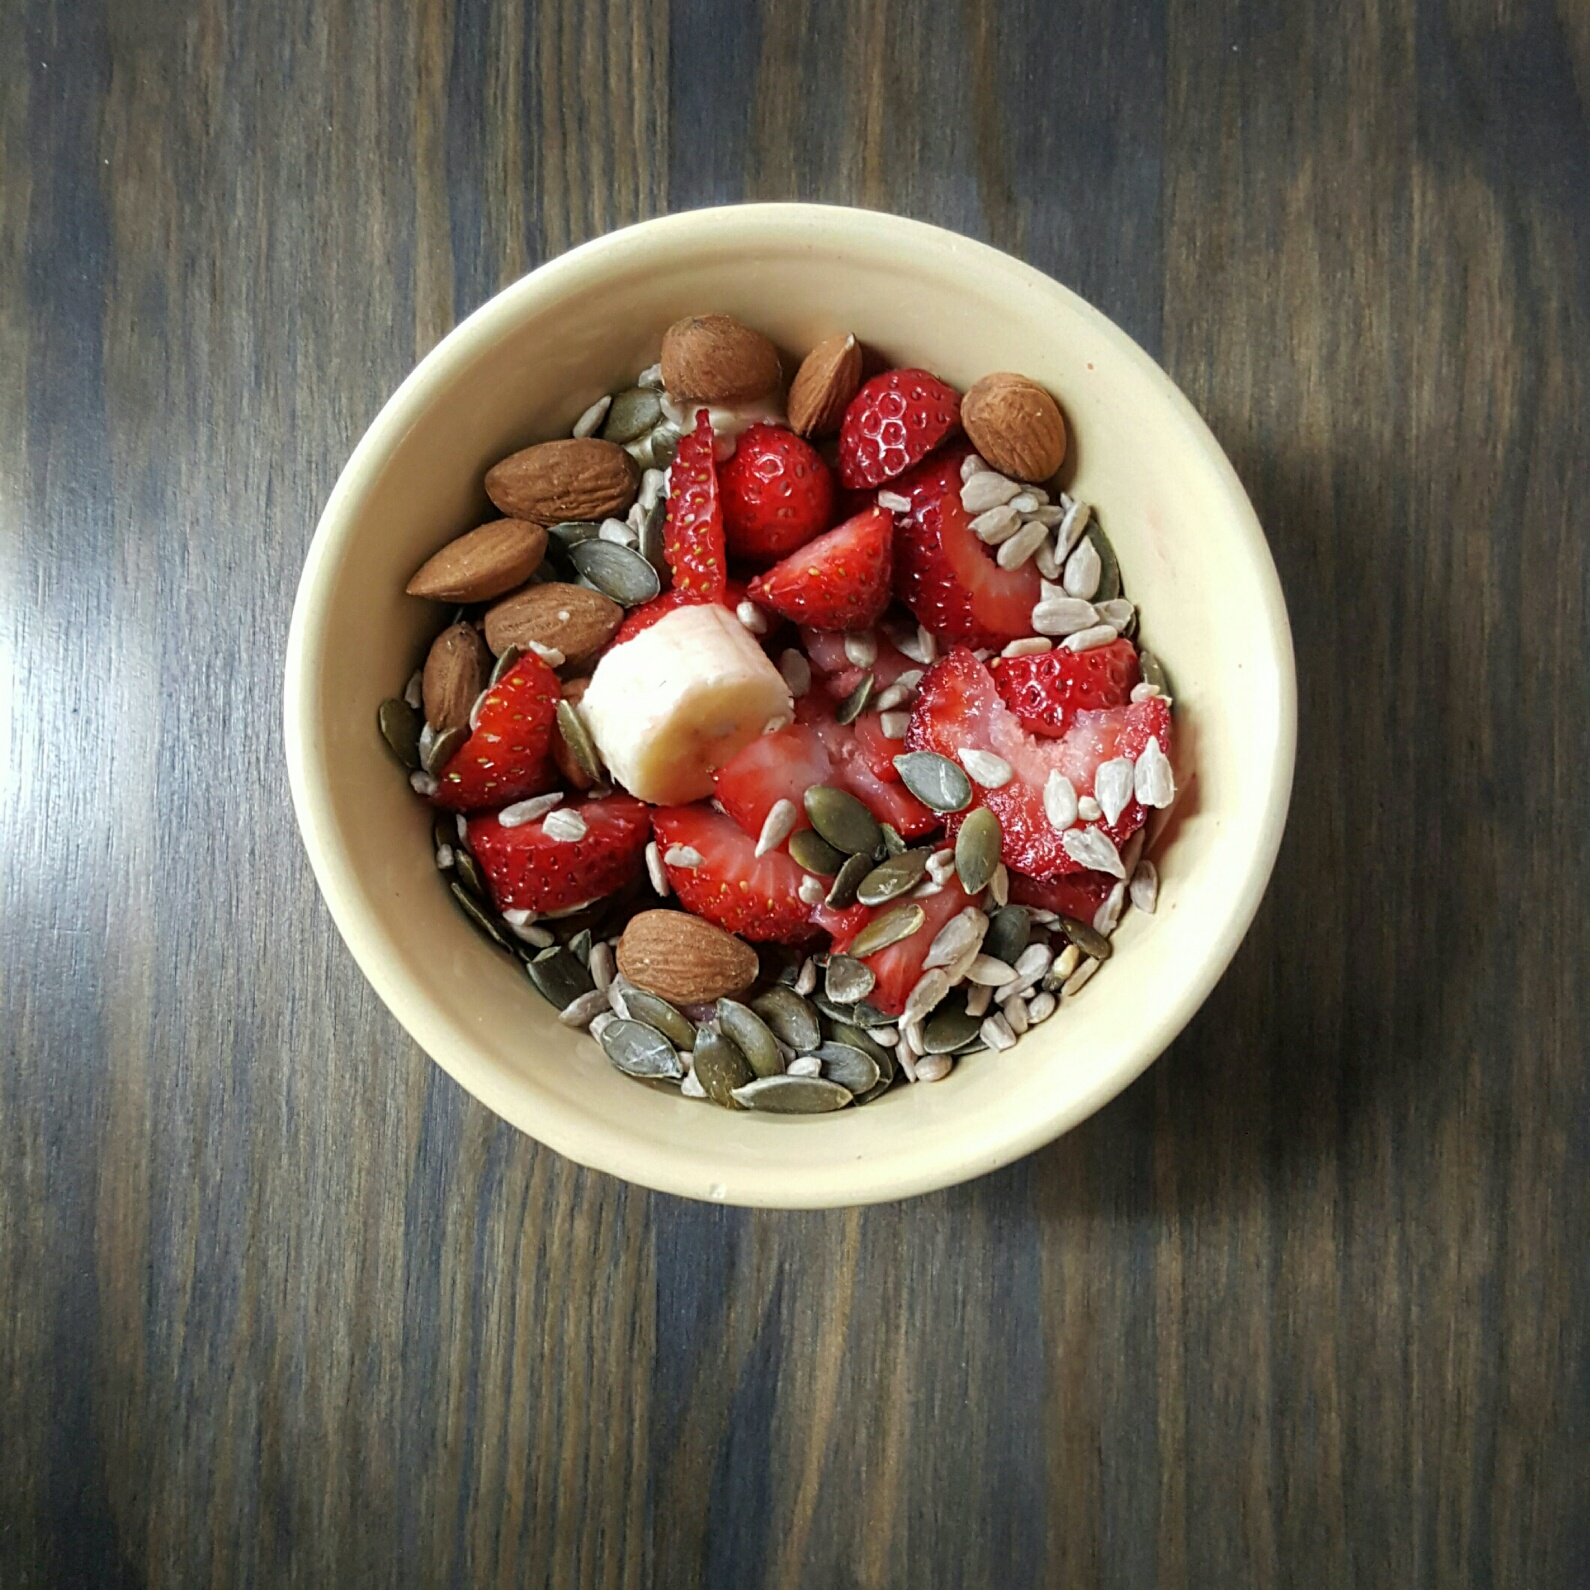 A banana, 4 strawberries and a handful of almonds, sunflower and pumpkin seeds